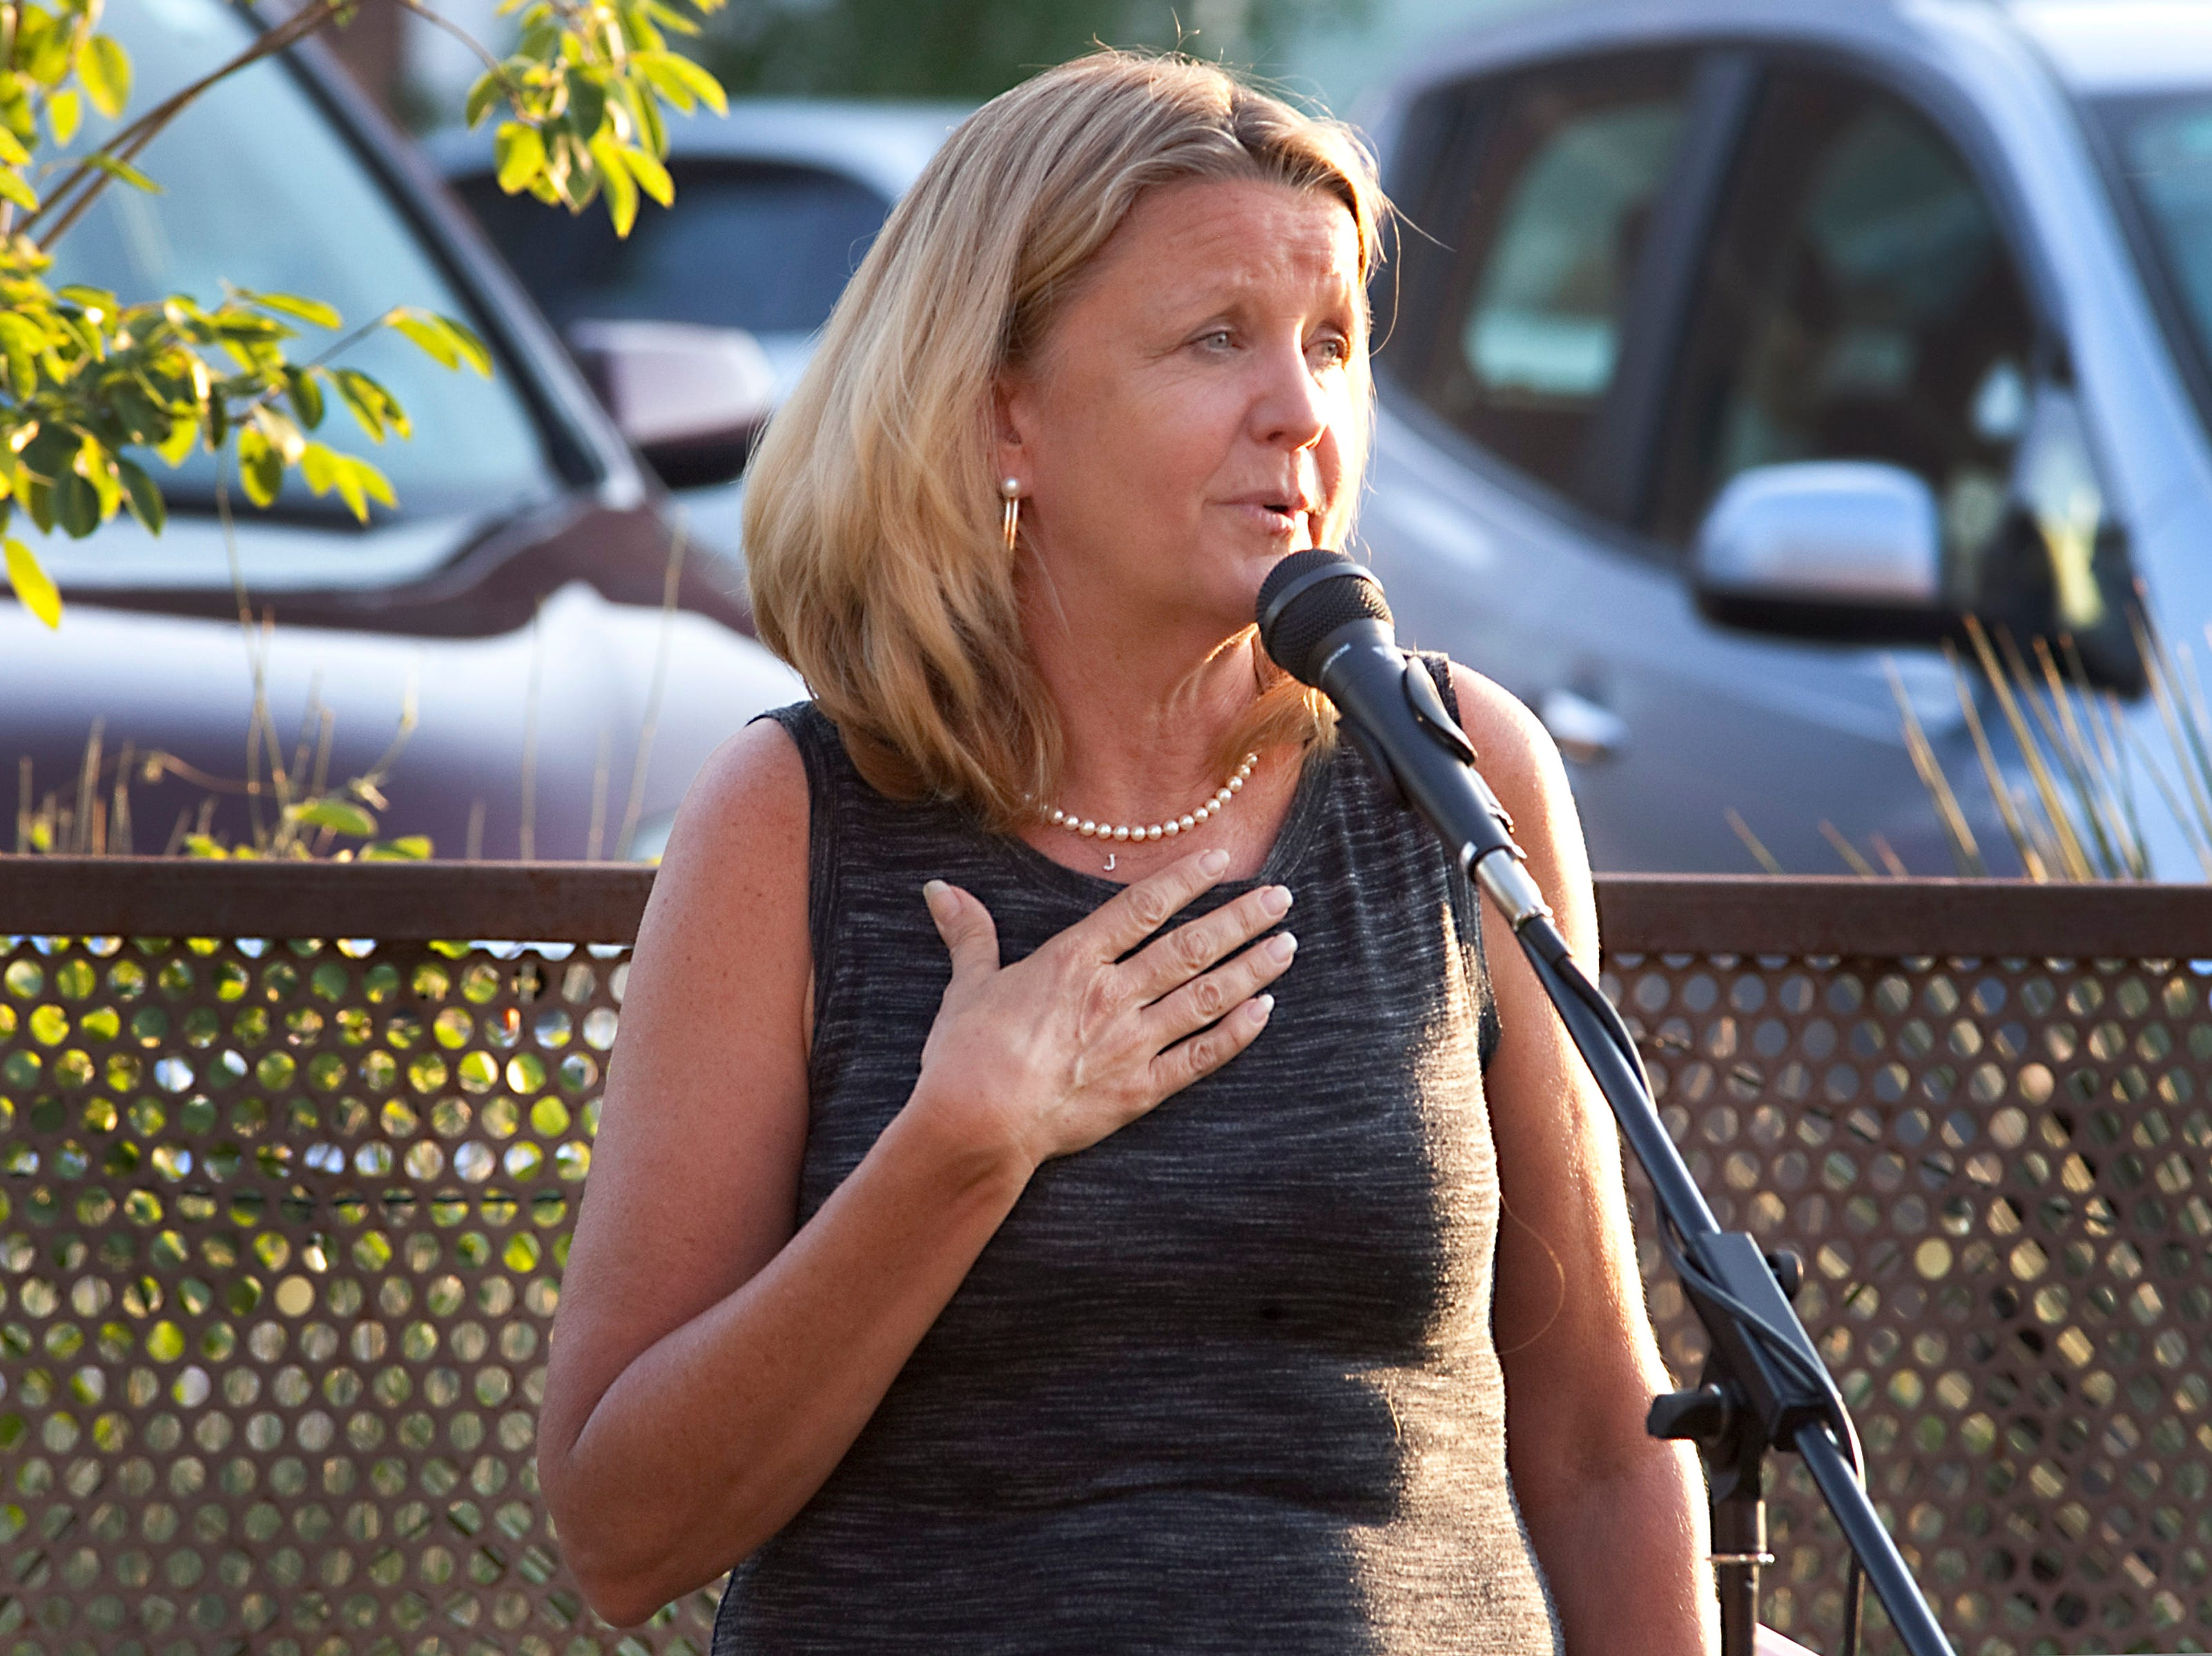 Storyteller Julie Ulstrup shares her story about her son receiving the Silver Star, during the Coloradoan Storytellers Project held at Wolverine Farm Letterpress & Publick House on Wednesday, Aug. 8, 2018.